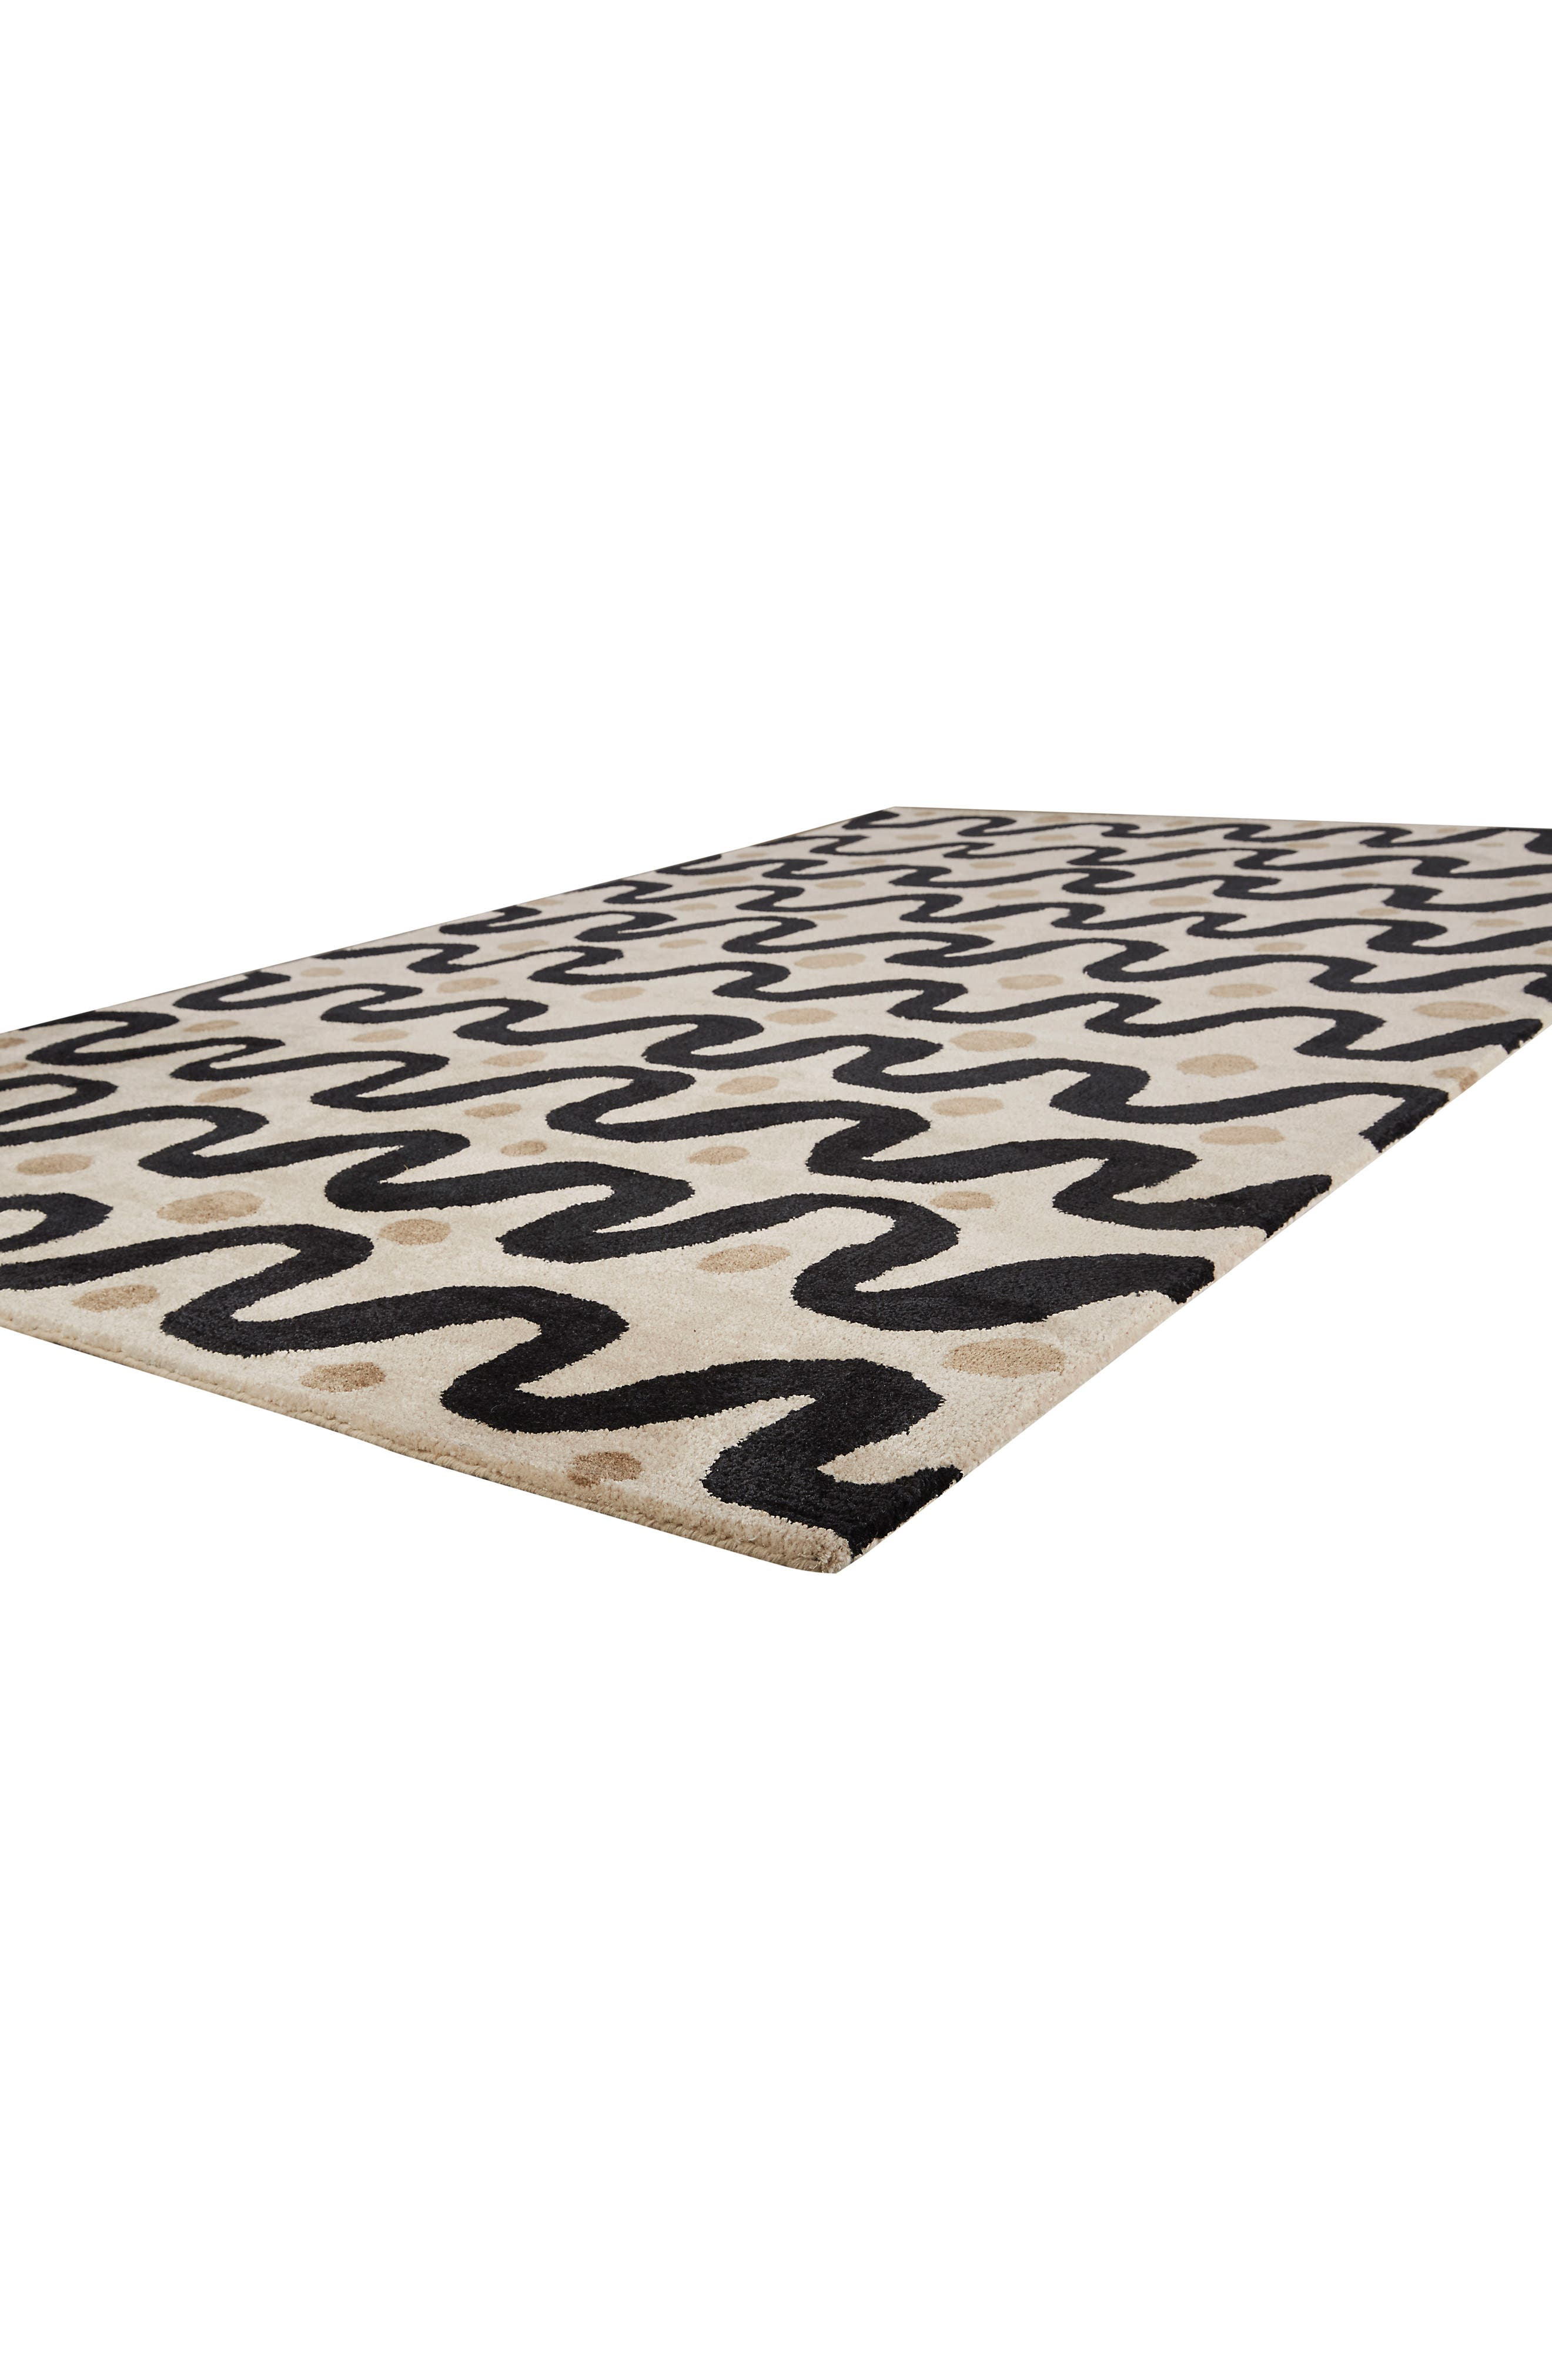 contemporary waves rug,                             Alternate thumbnail 2, color,                             250